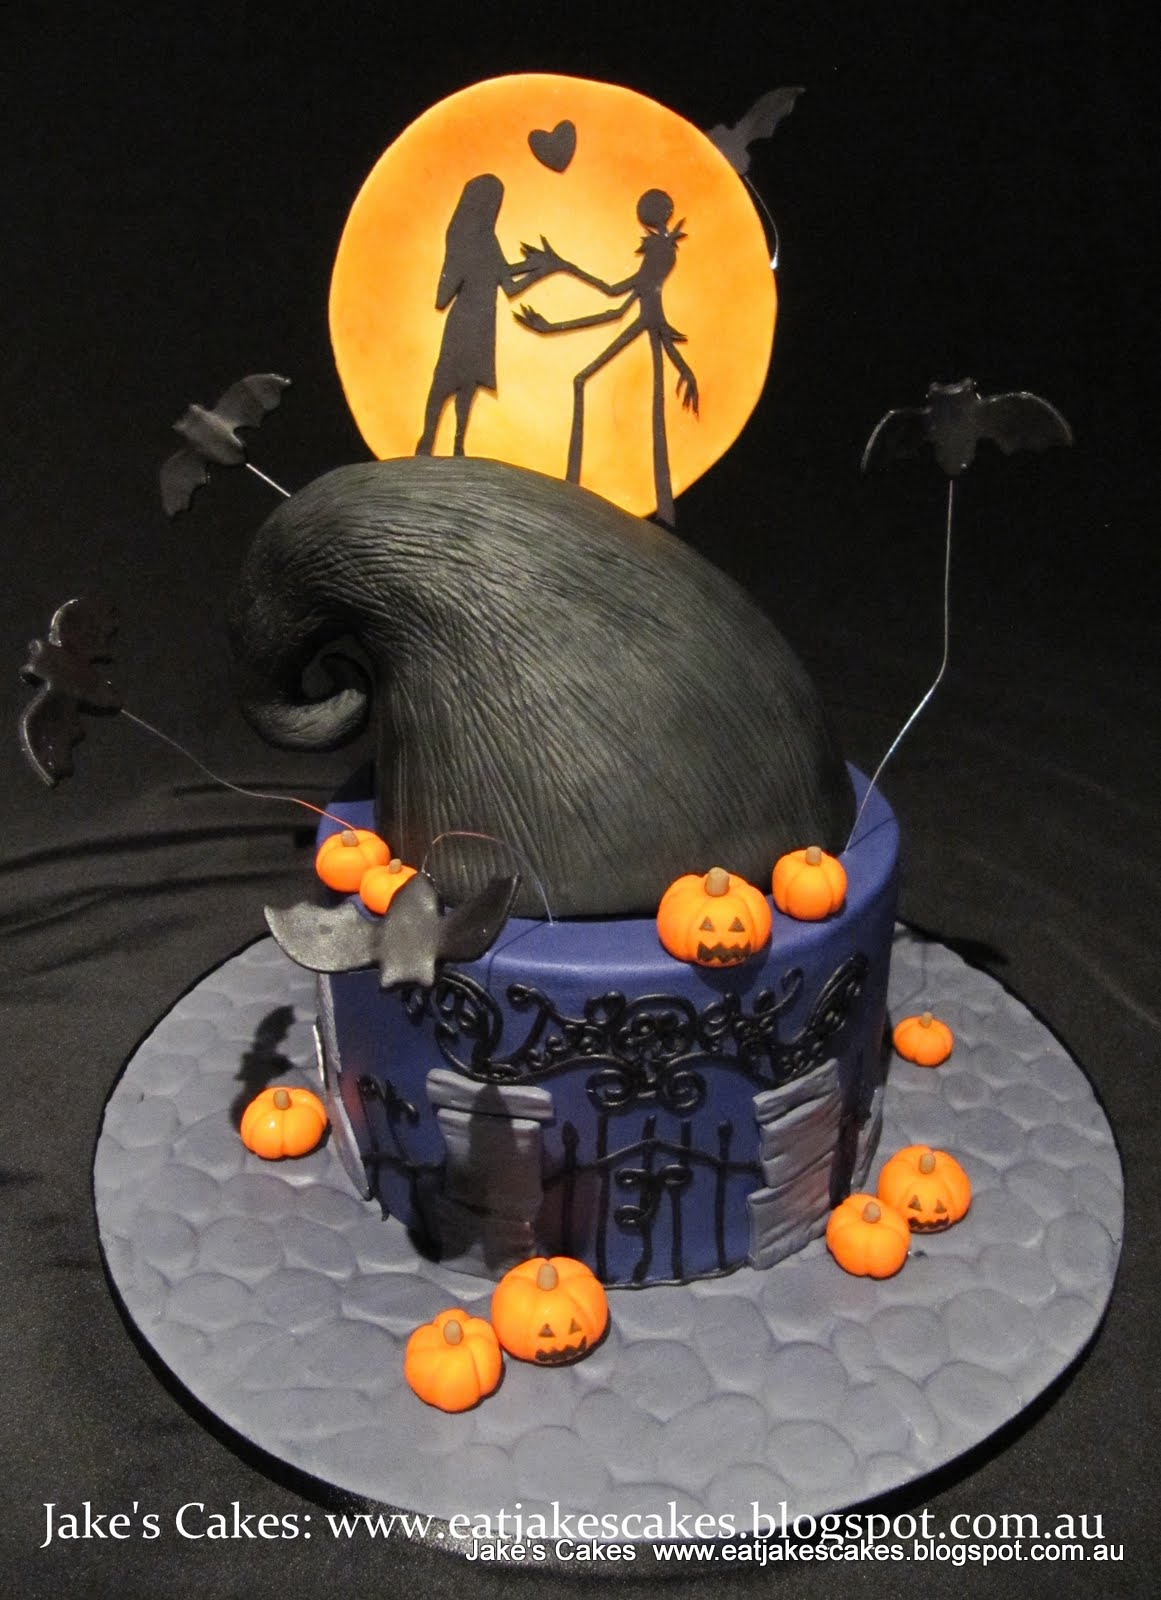 Jake's Cakes: Nightmare before Christmas Cake